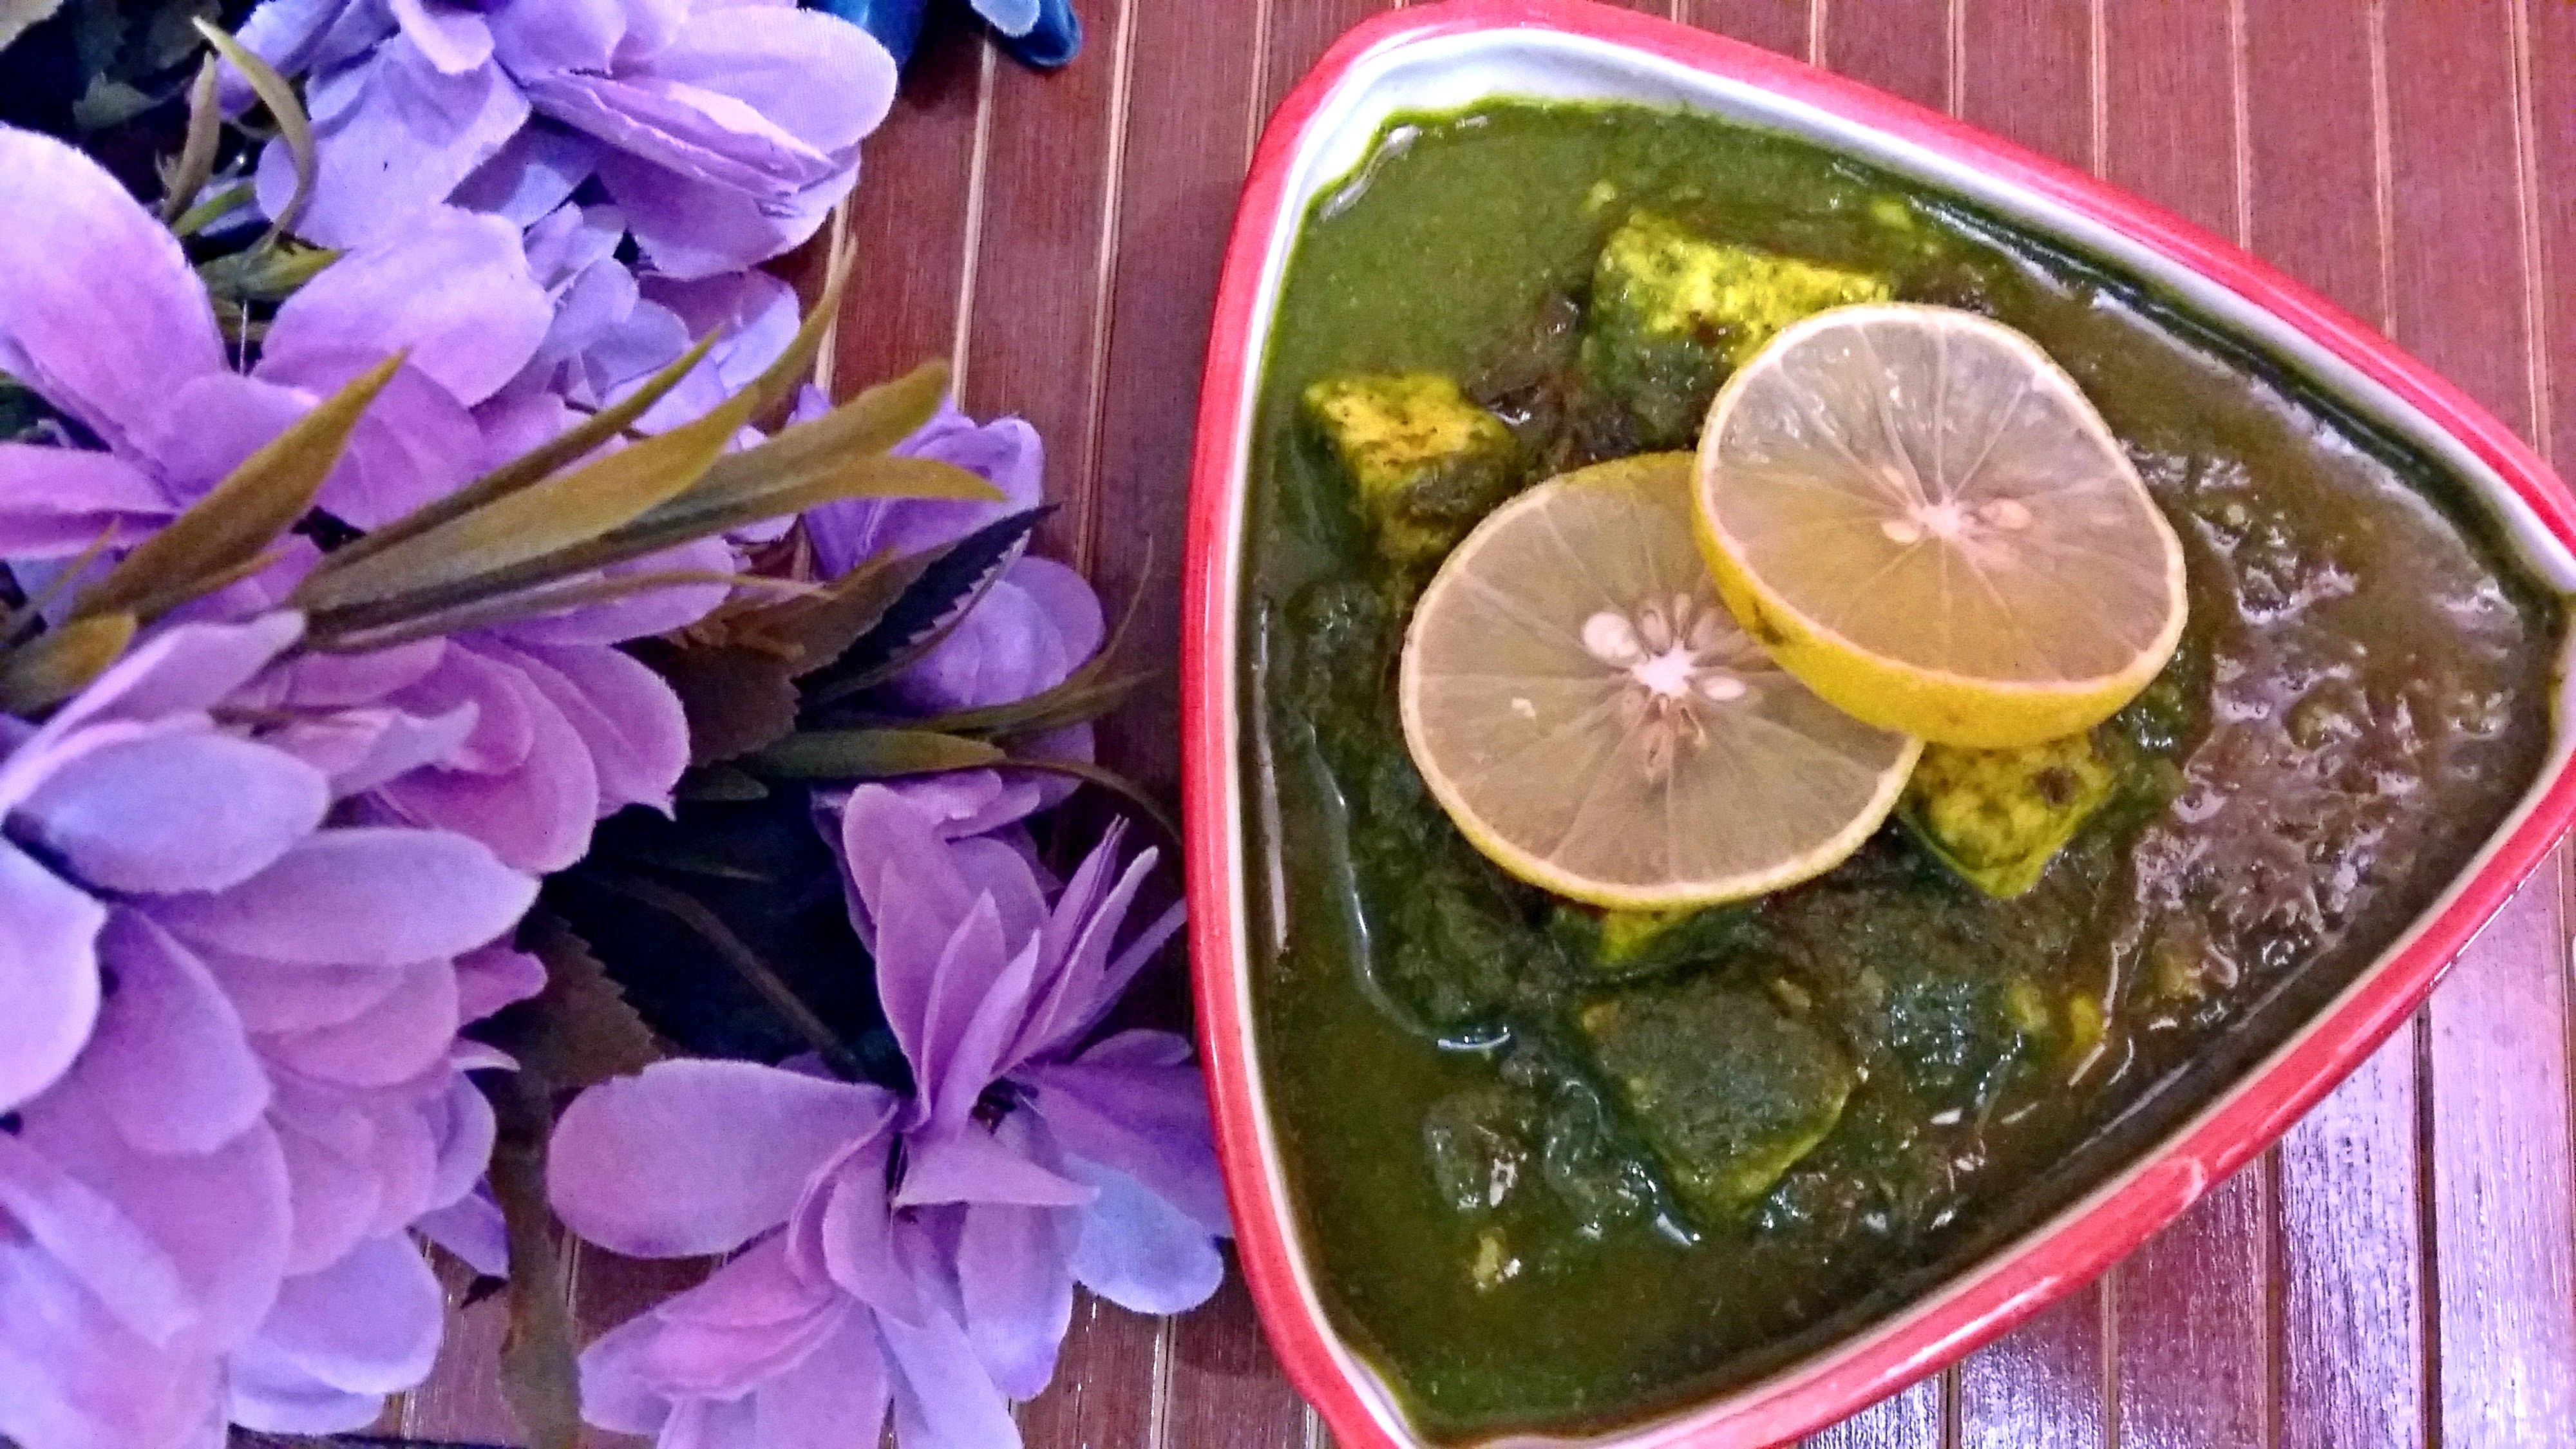 No oil palak paneer recipes we cooked pinterest palak paneer no oil palak paneer is your very own palak paneer cooked without oil or butter its tastes just as amazing as your original palak paneer forumfinder Gallery